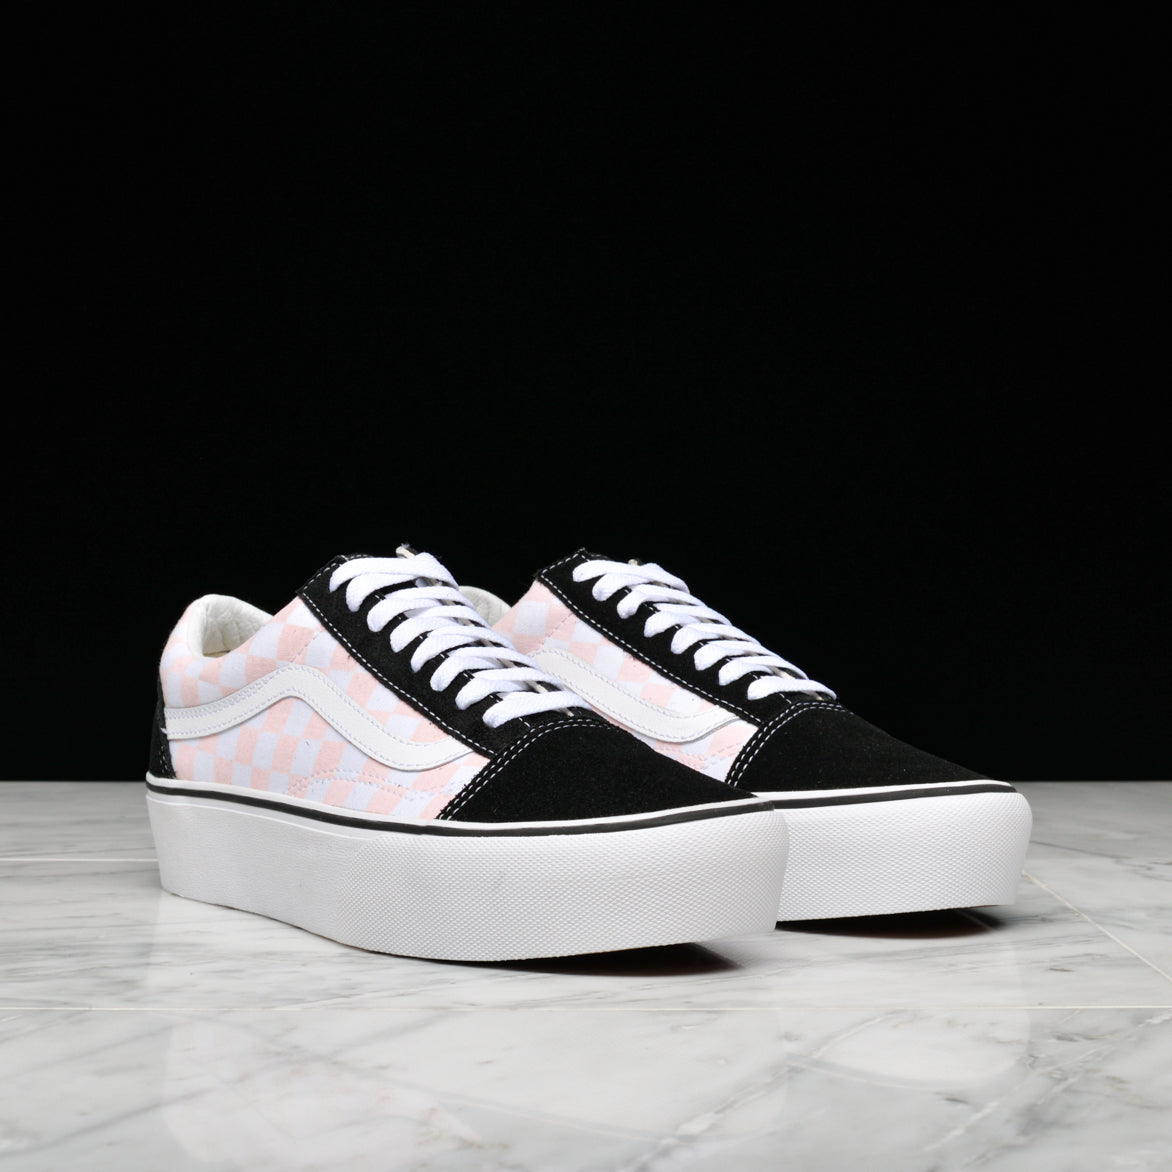 vans old skool checkerboard size 6